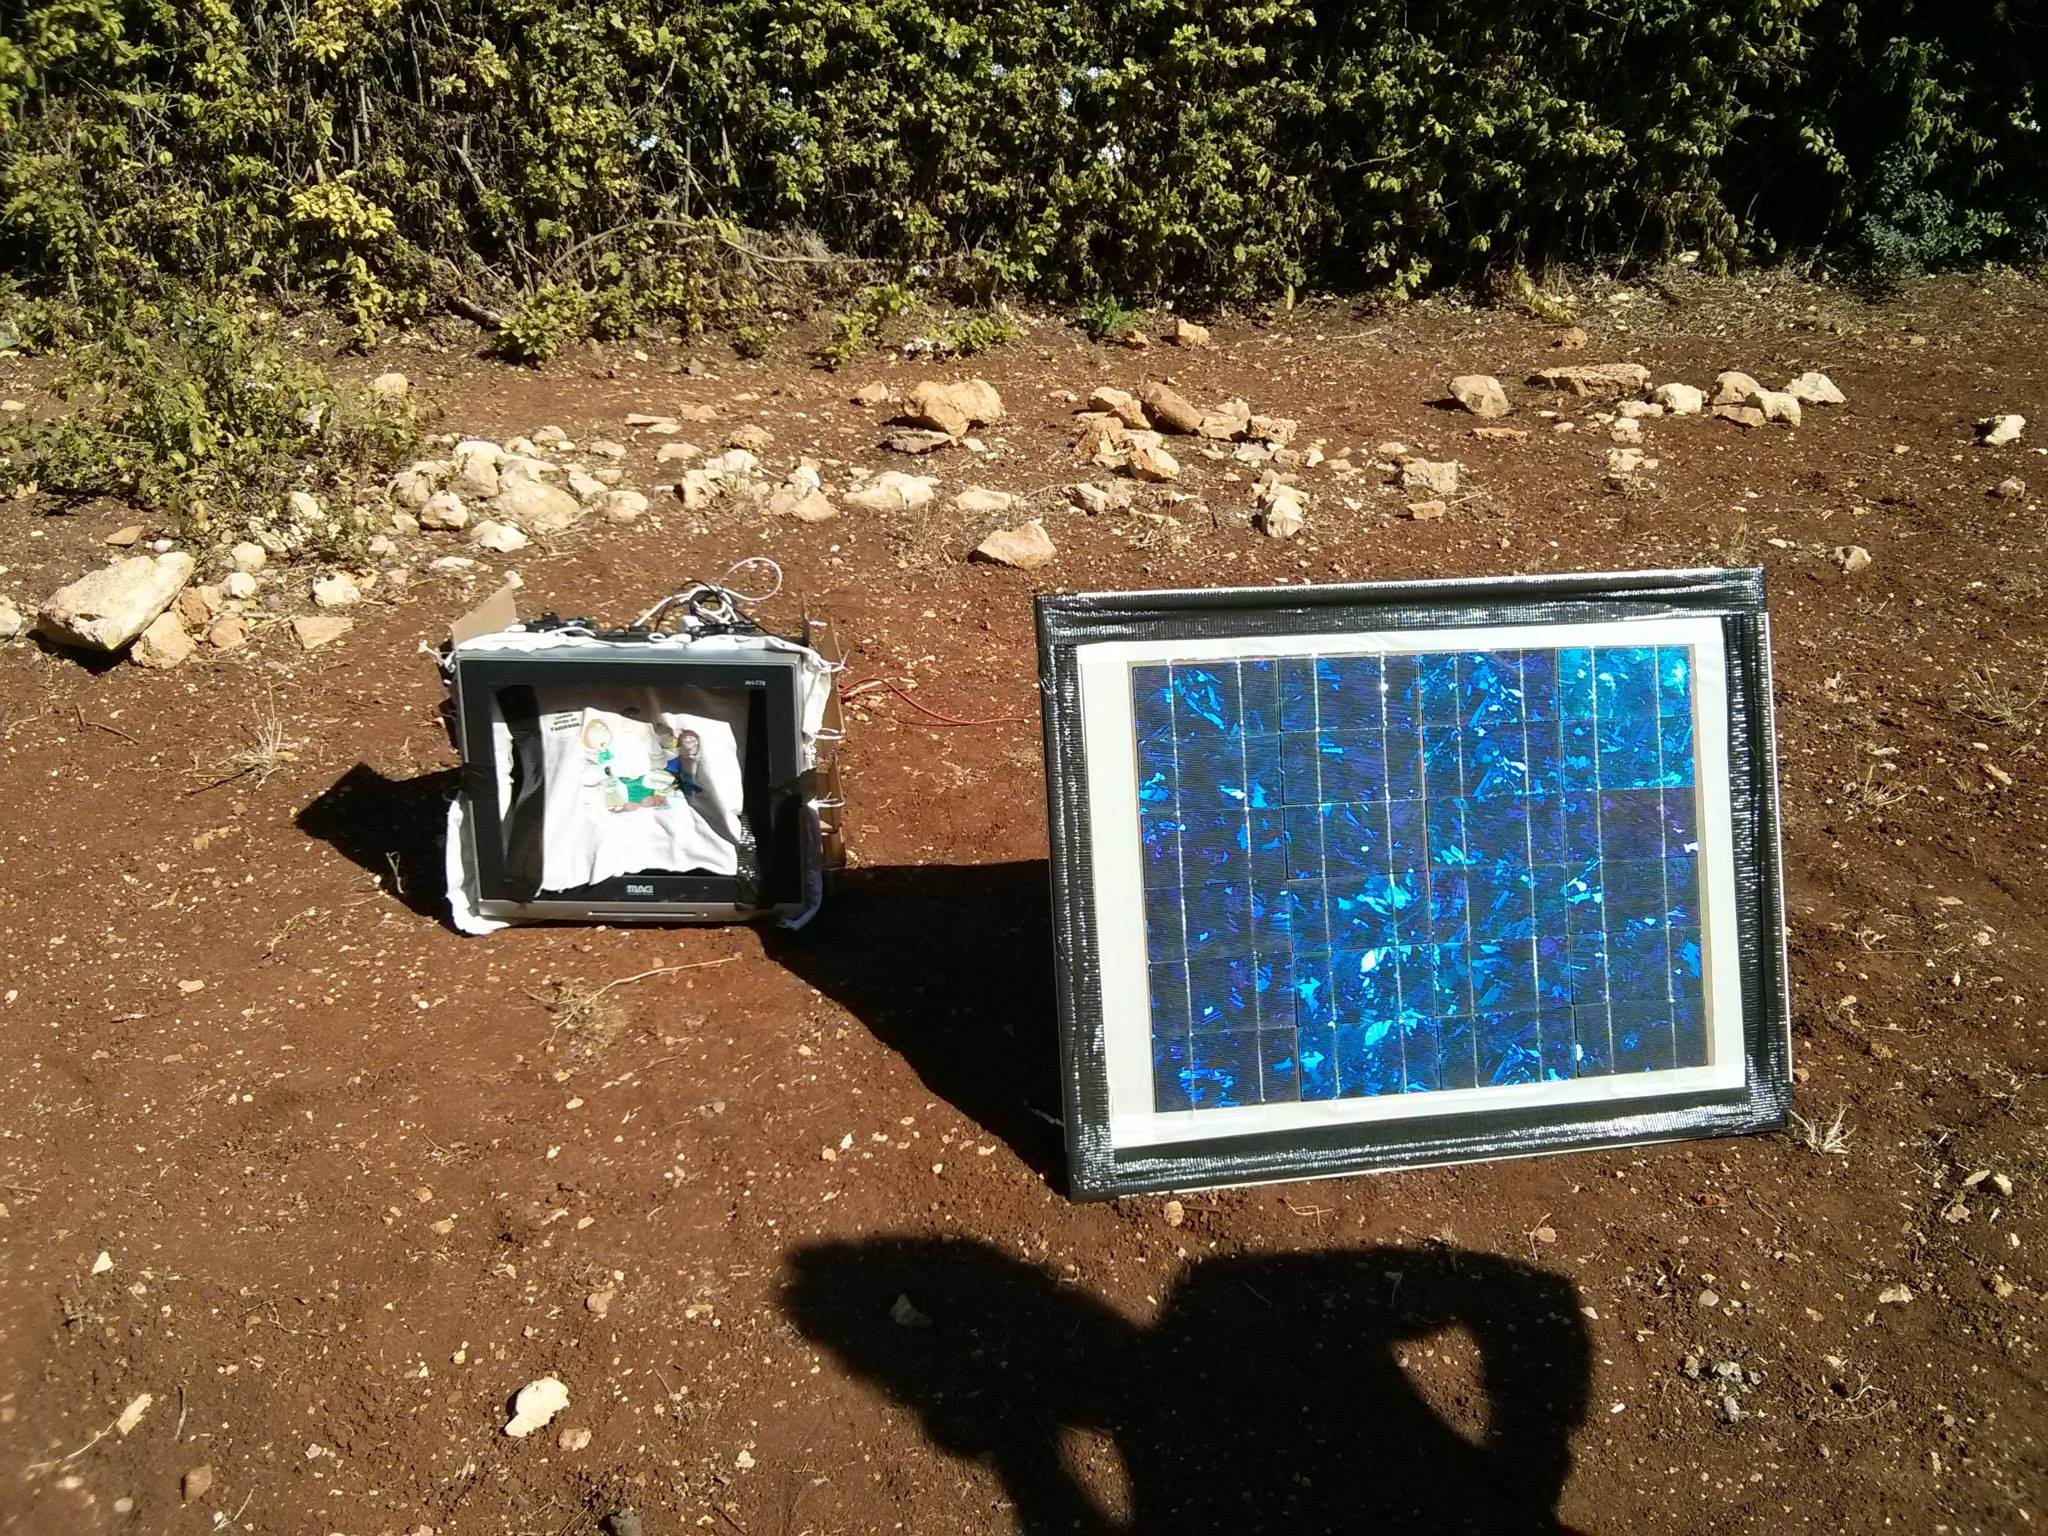 solar phone charging station - First time working